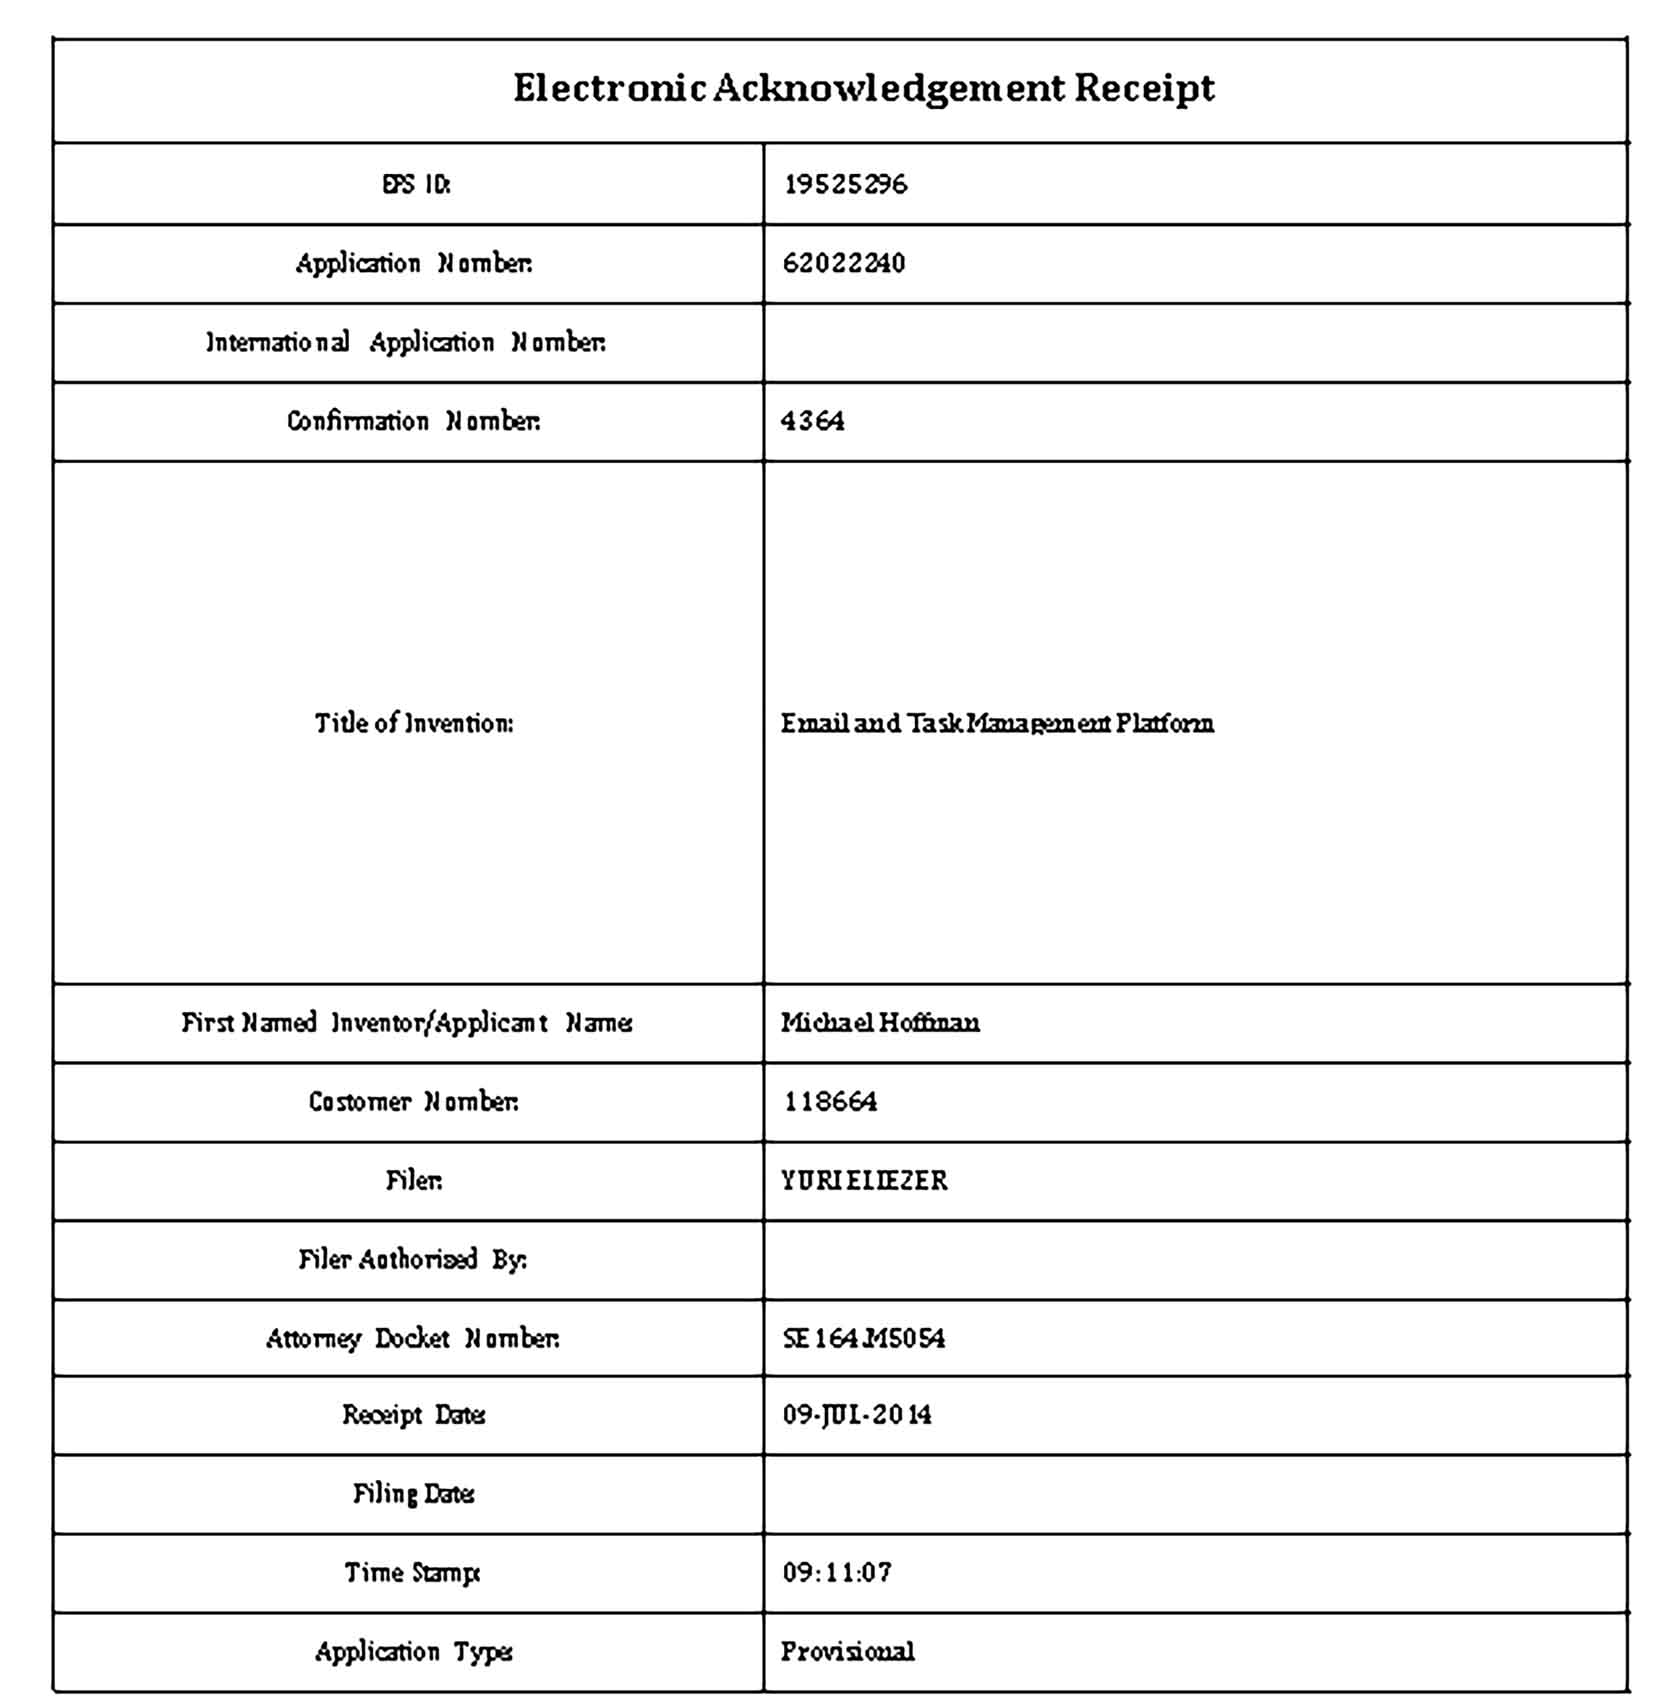 Sample Electronic Payment Acknowledgement Receipt Templates